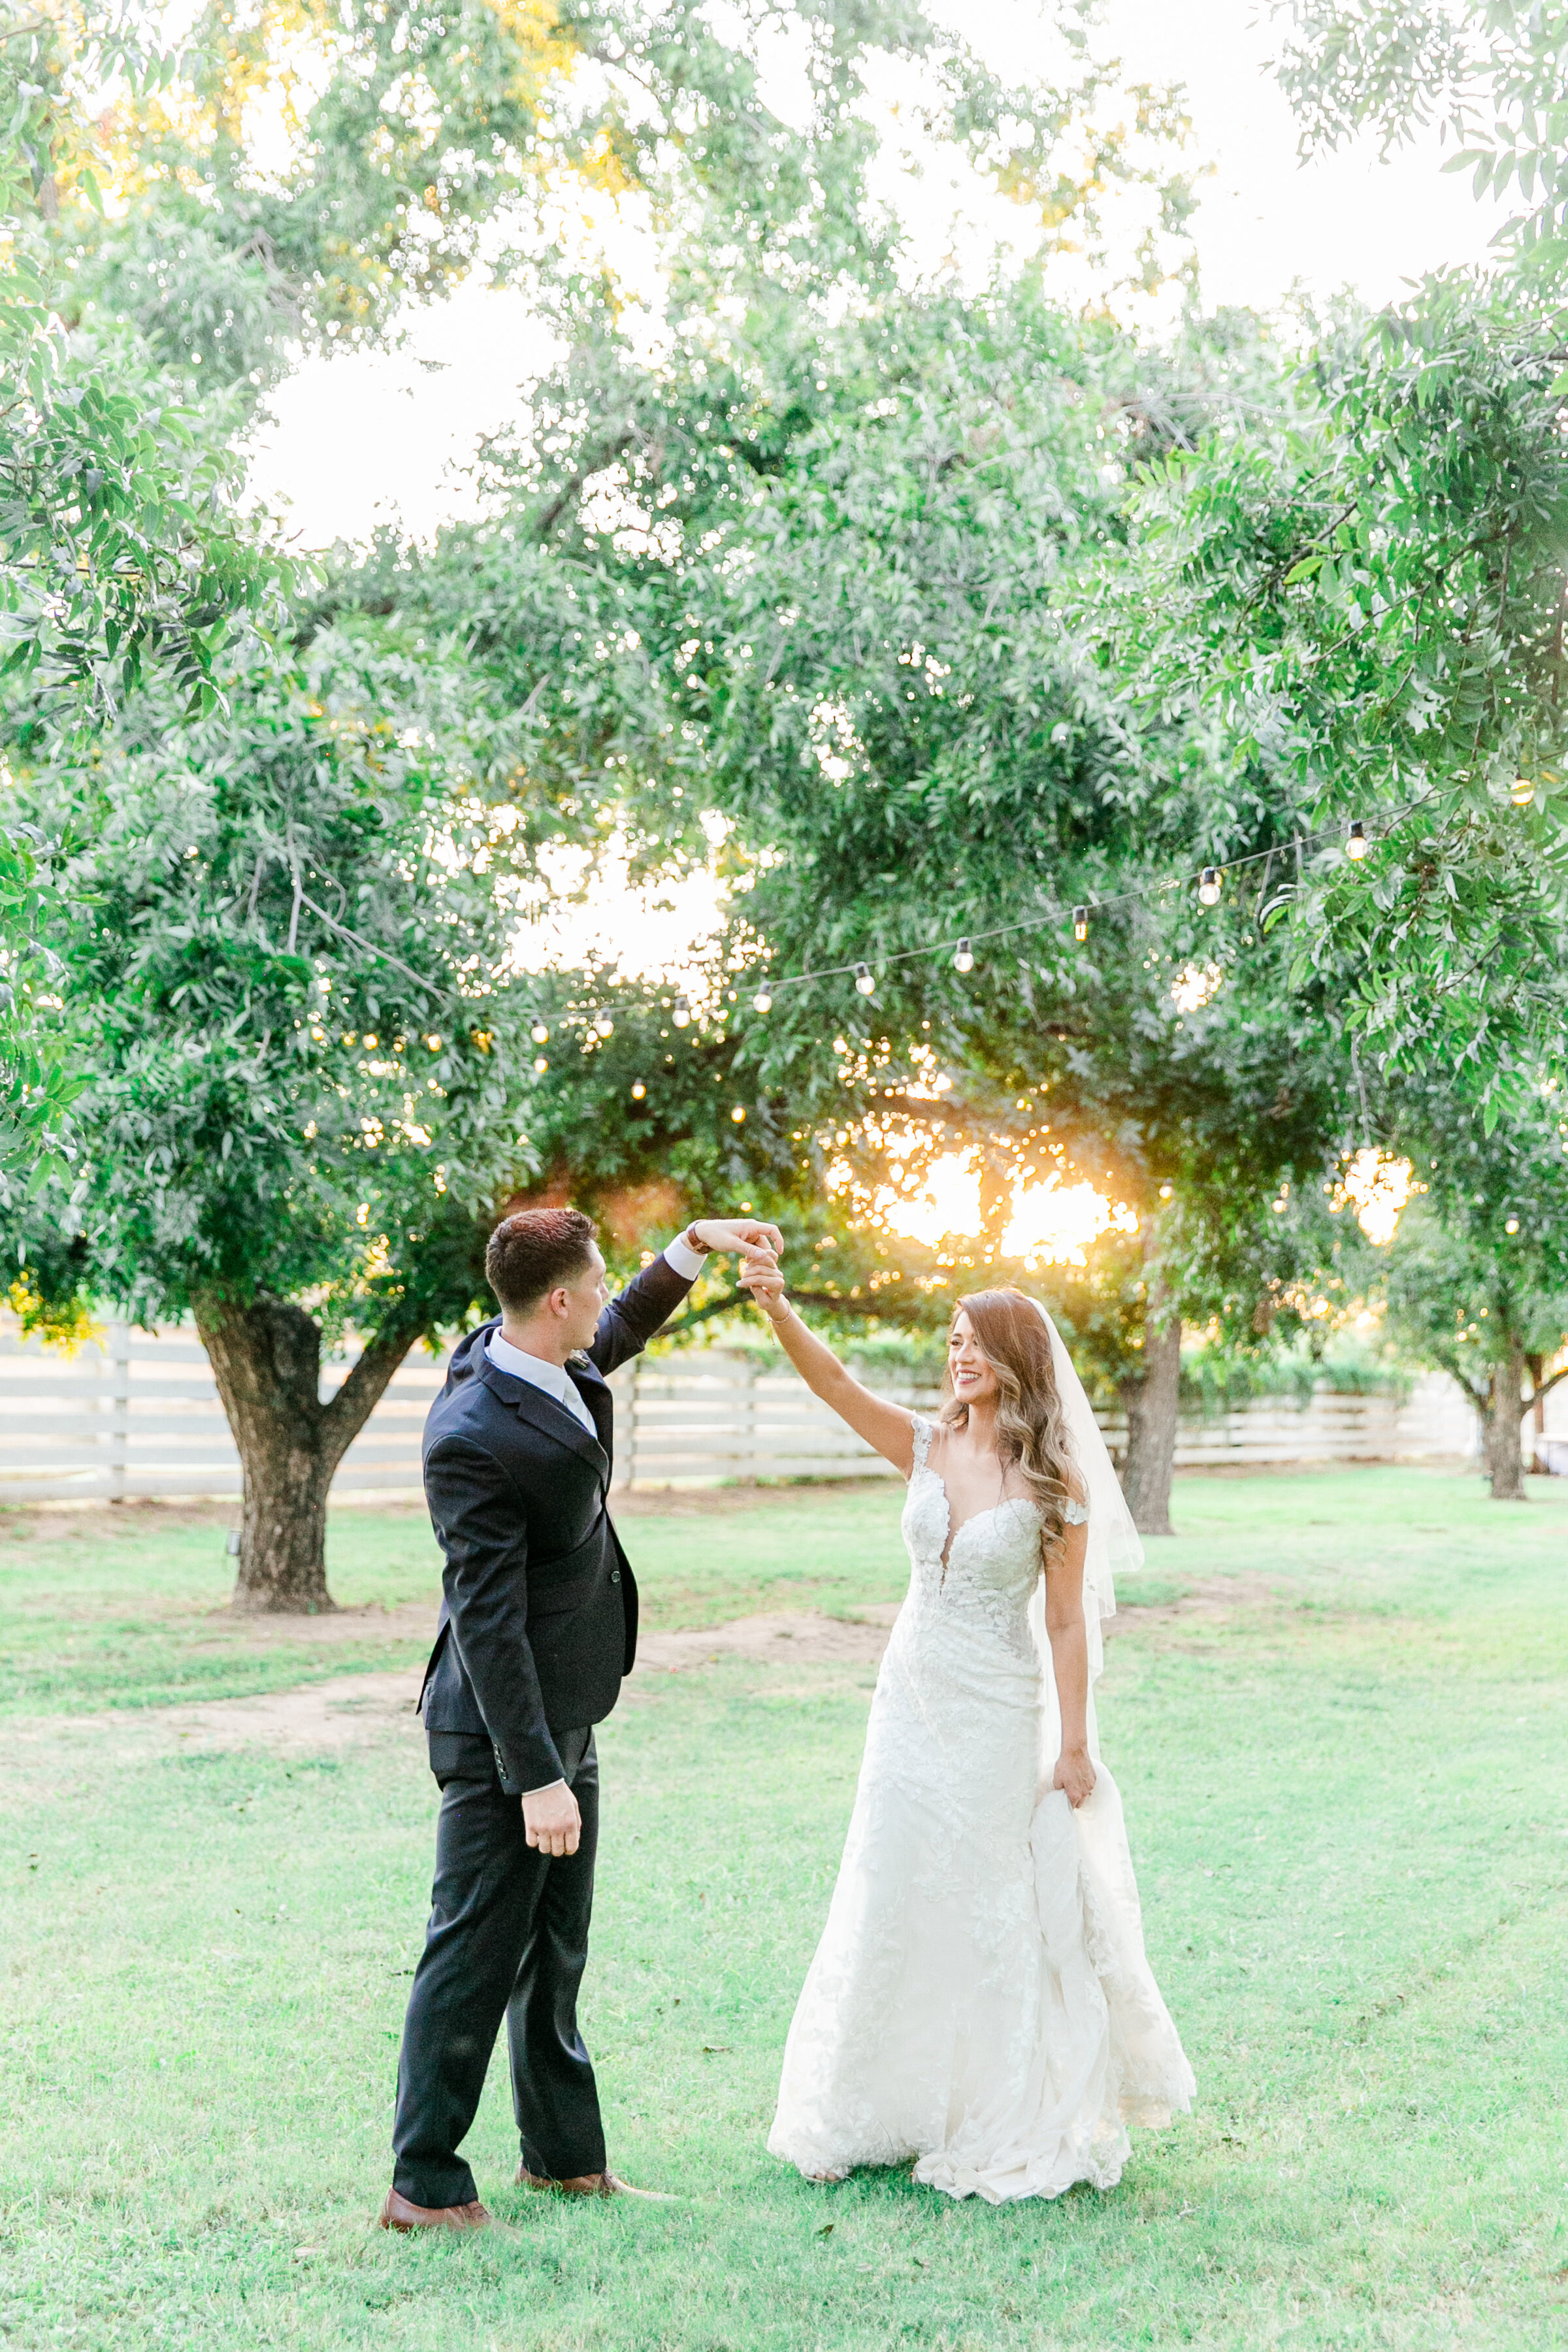 Karlie Colleen Photography - Phoenix Arizona - Farm At South Mountain Venue - Vanessa & Robert-617